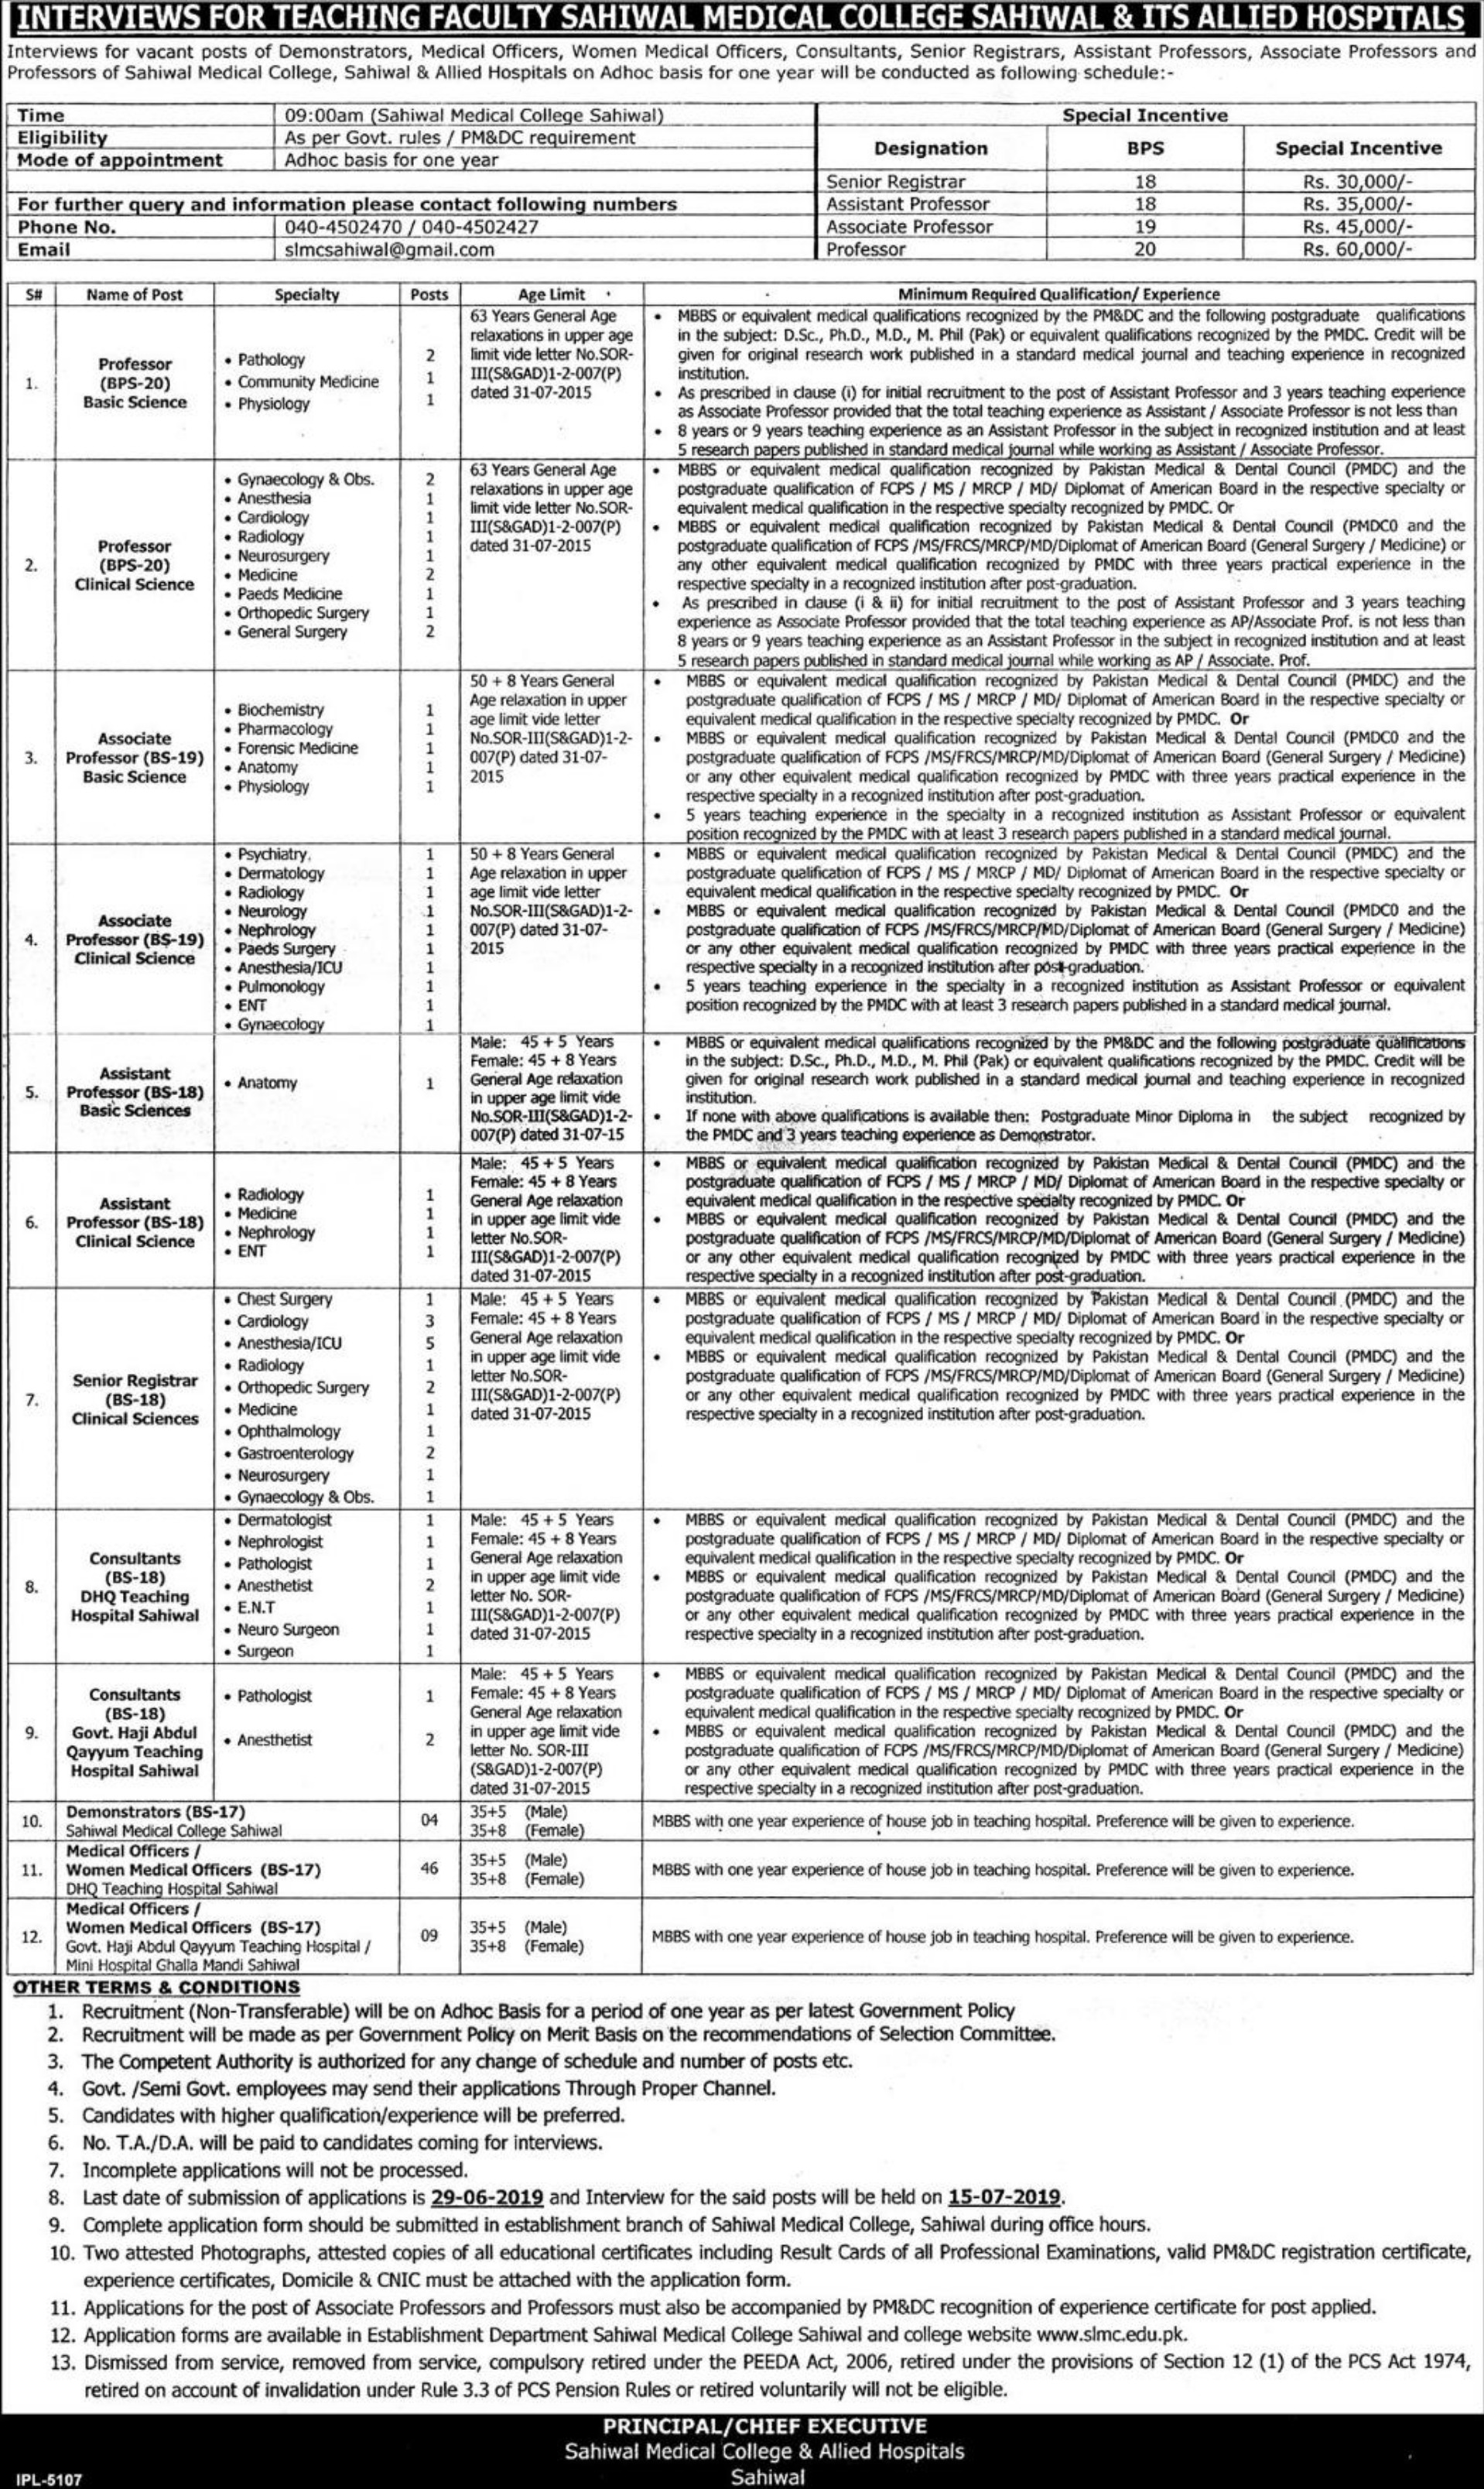 Sahiwal Medical College & Allied Hospitals Sahiwal Jobs 2019